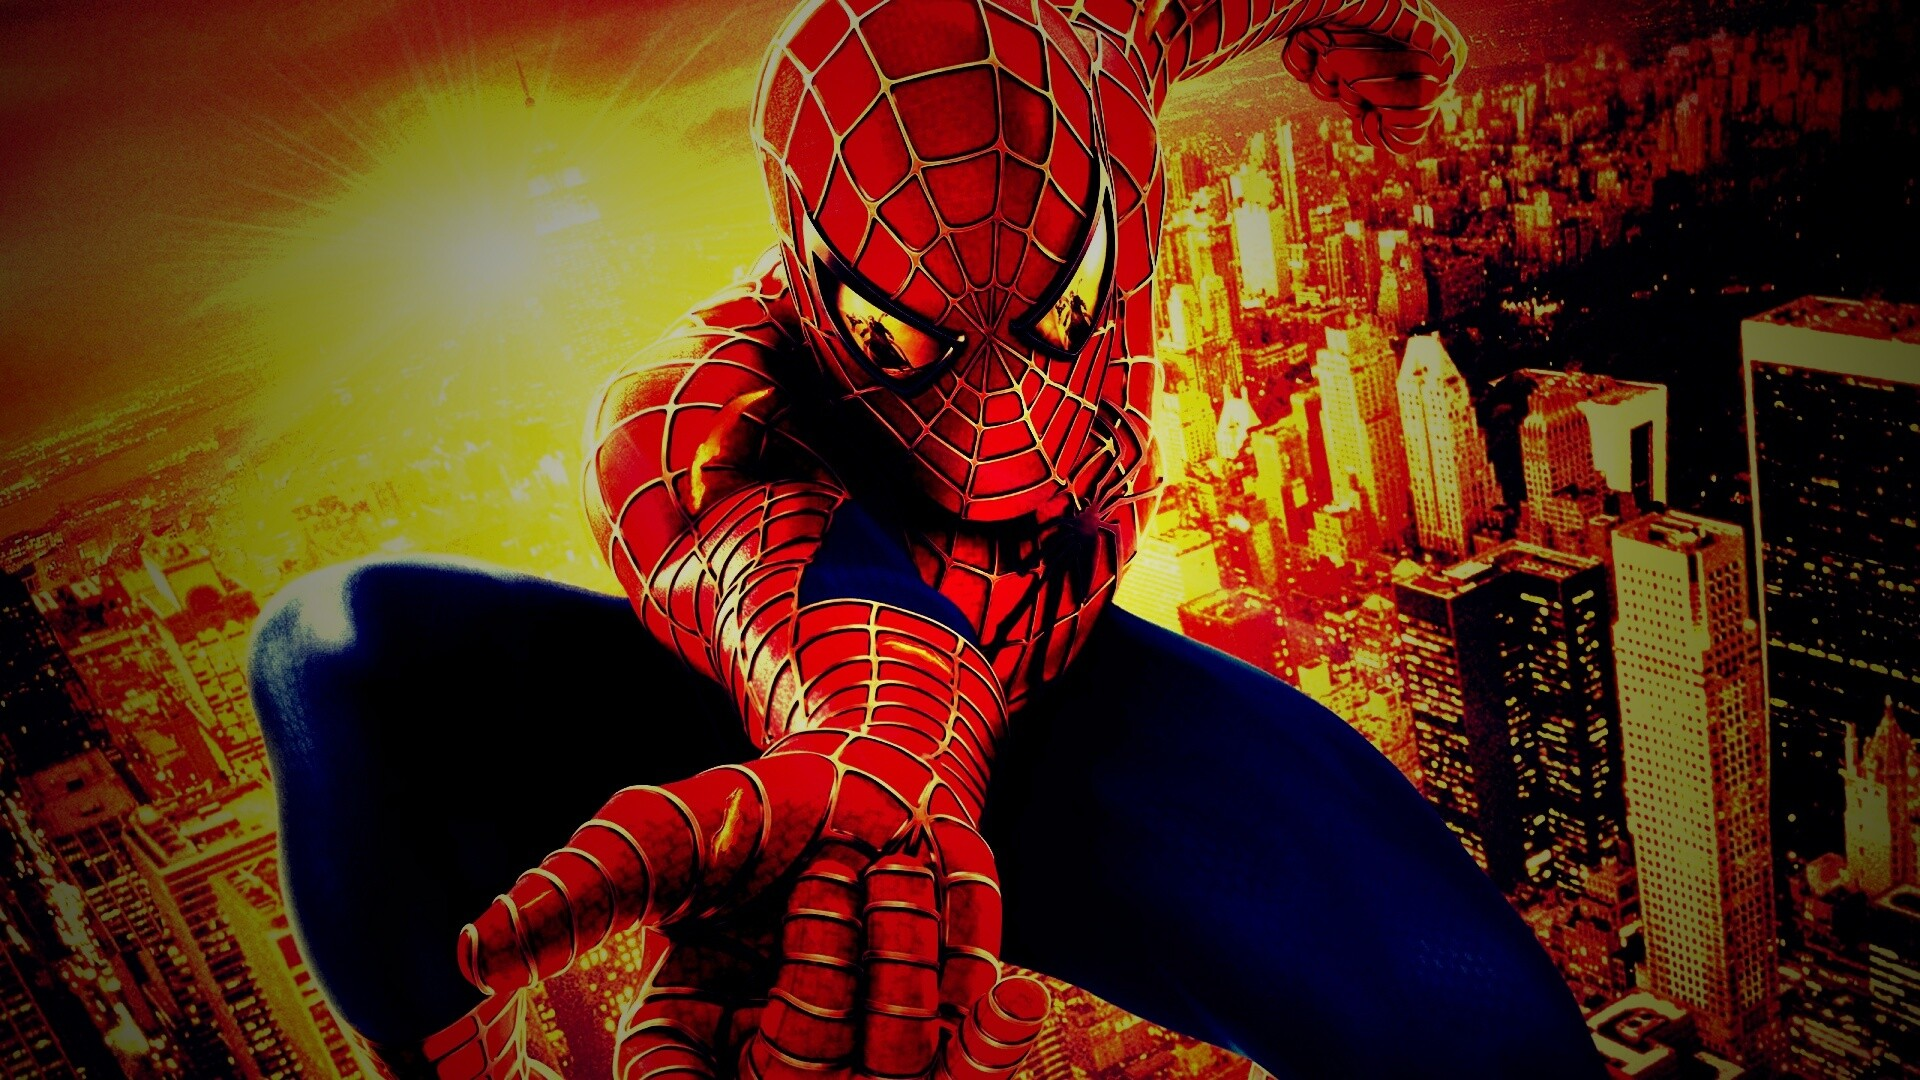 Spider Man mobile wallpapers. Download free Spider Man Pictures of spiderman wallpapers